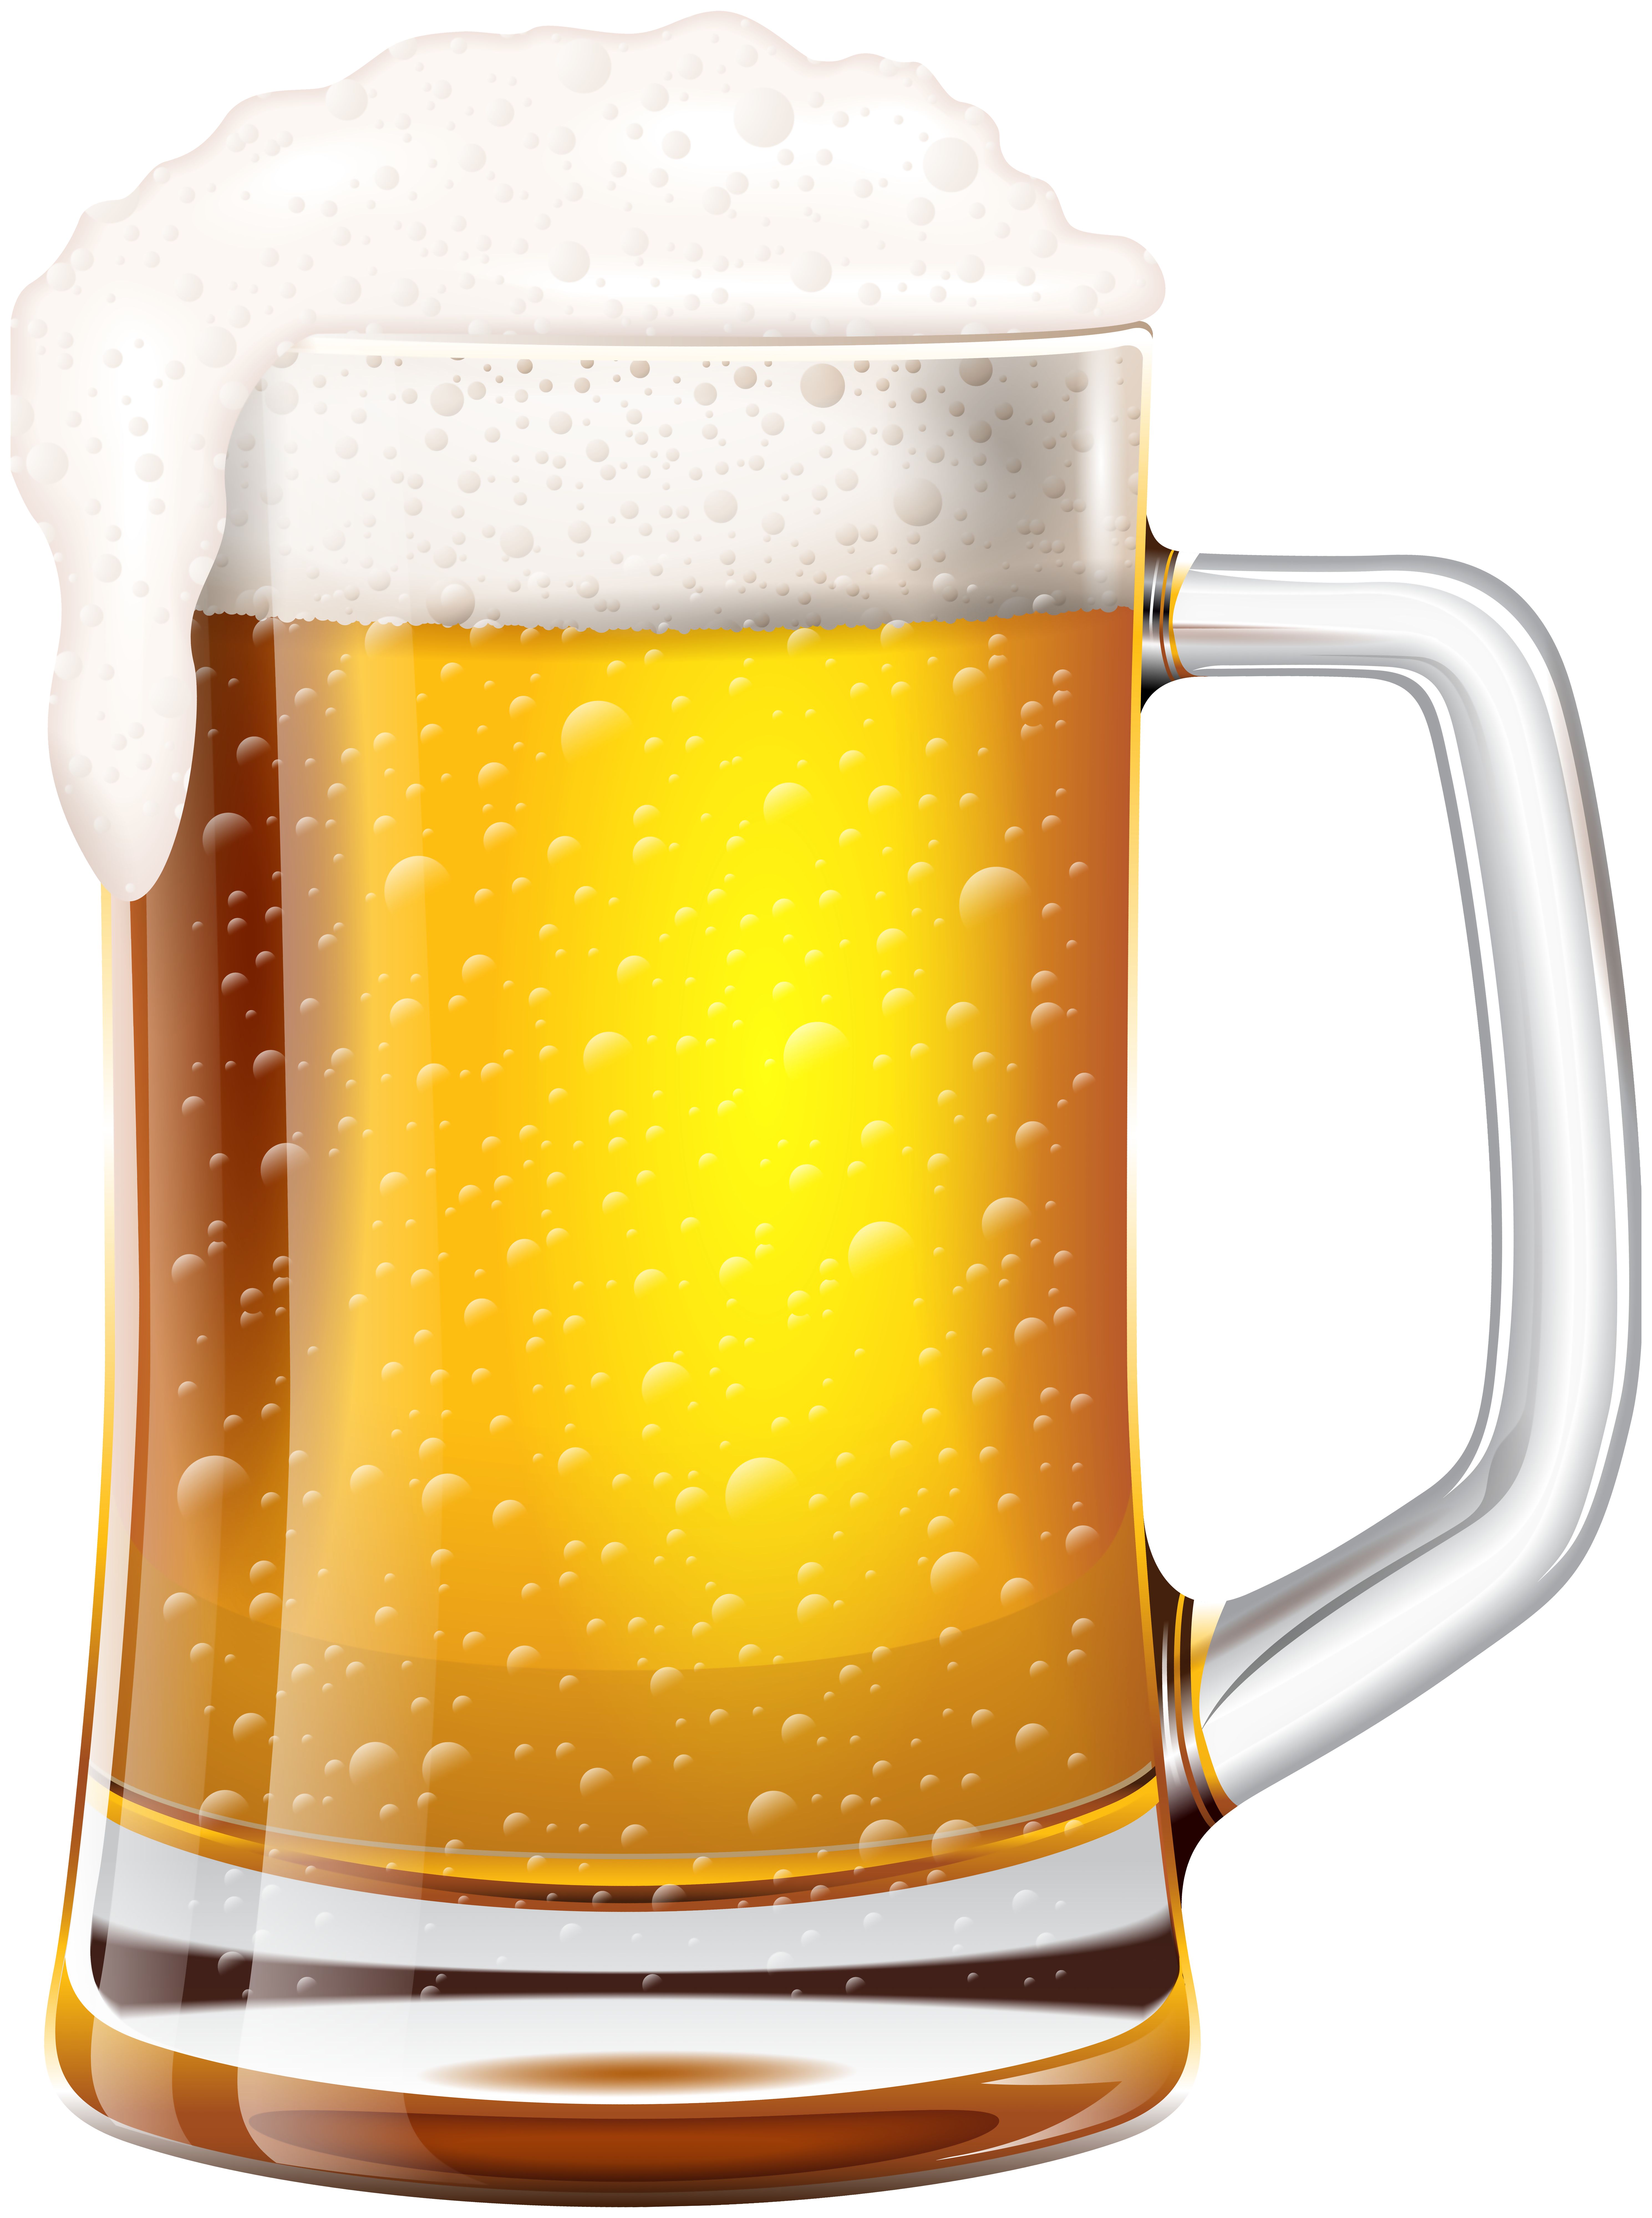 Beer mug pictures clipart clipart black and white download Beer Mug Clip Art Image | Gallery Yopriceville - High-Quality ... clipart black and white download